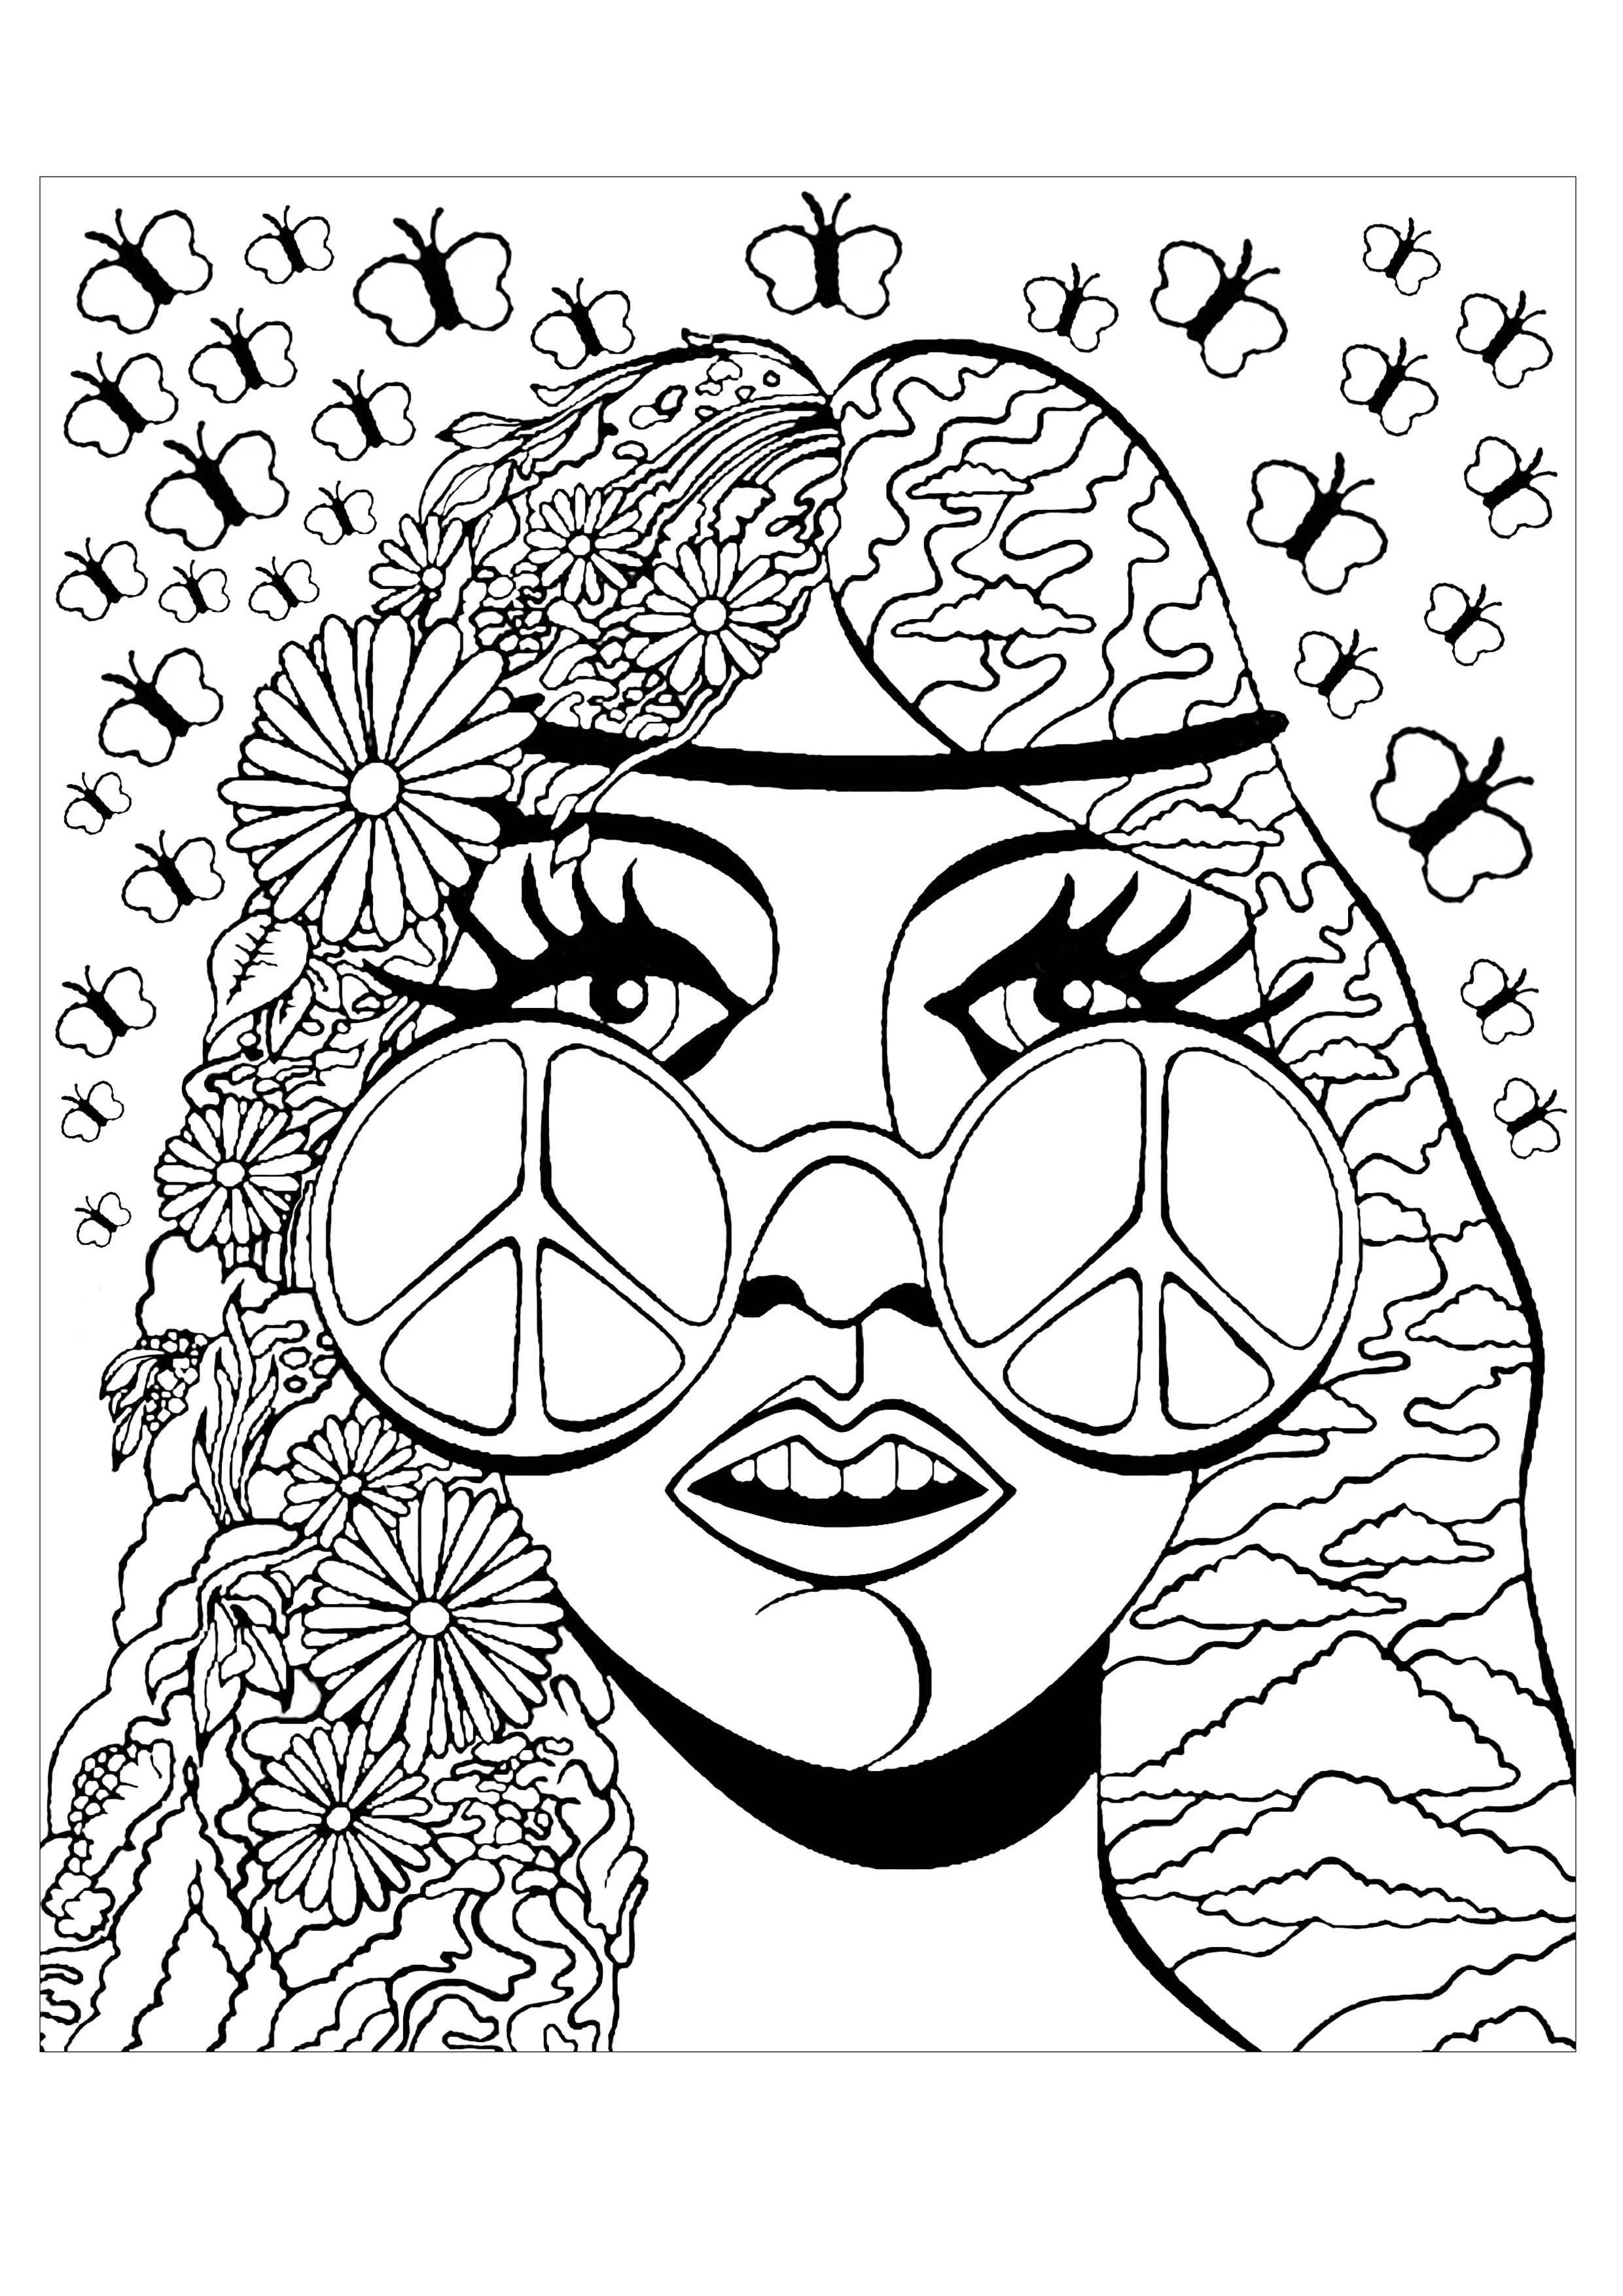 trippy coloring pages trippy alice in wonderland coloring pages coloring home trippy pages coloring